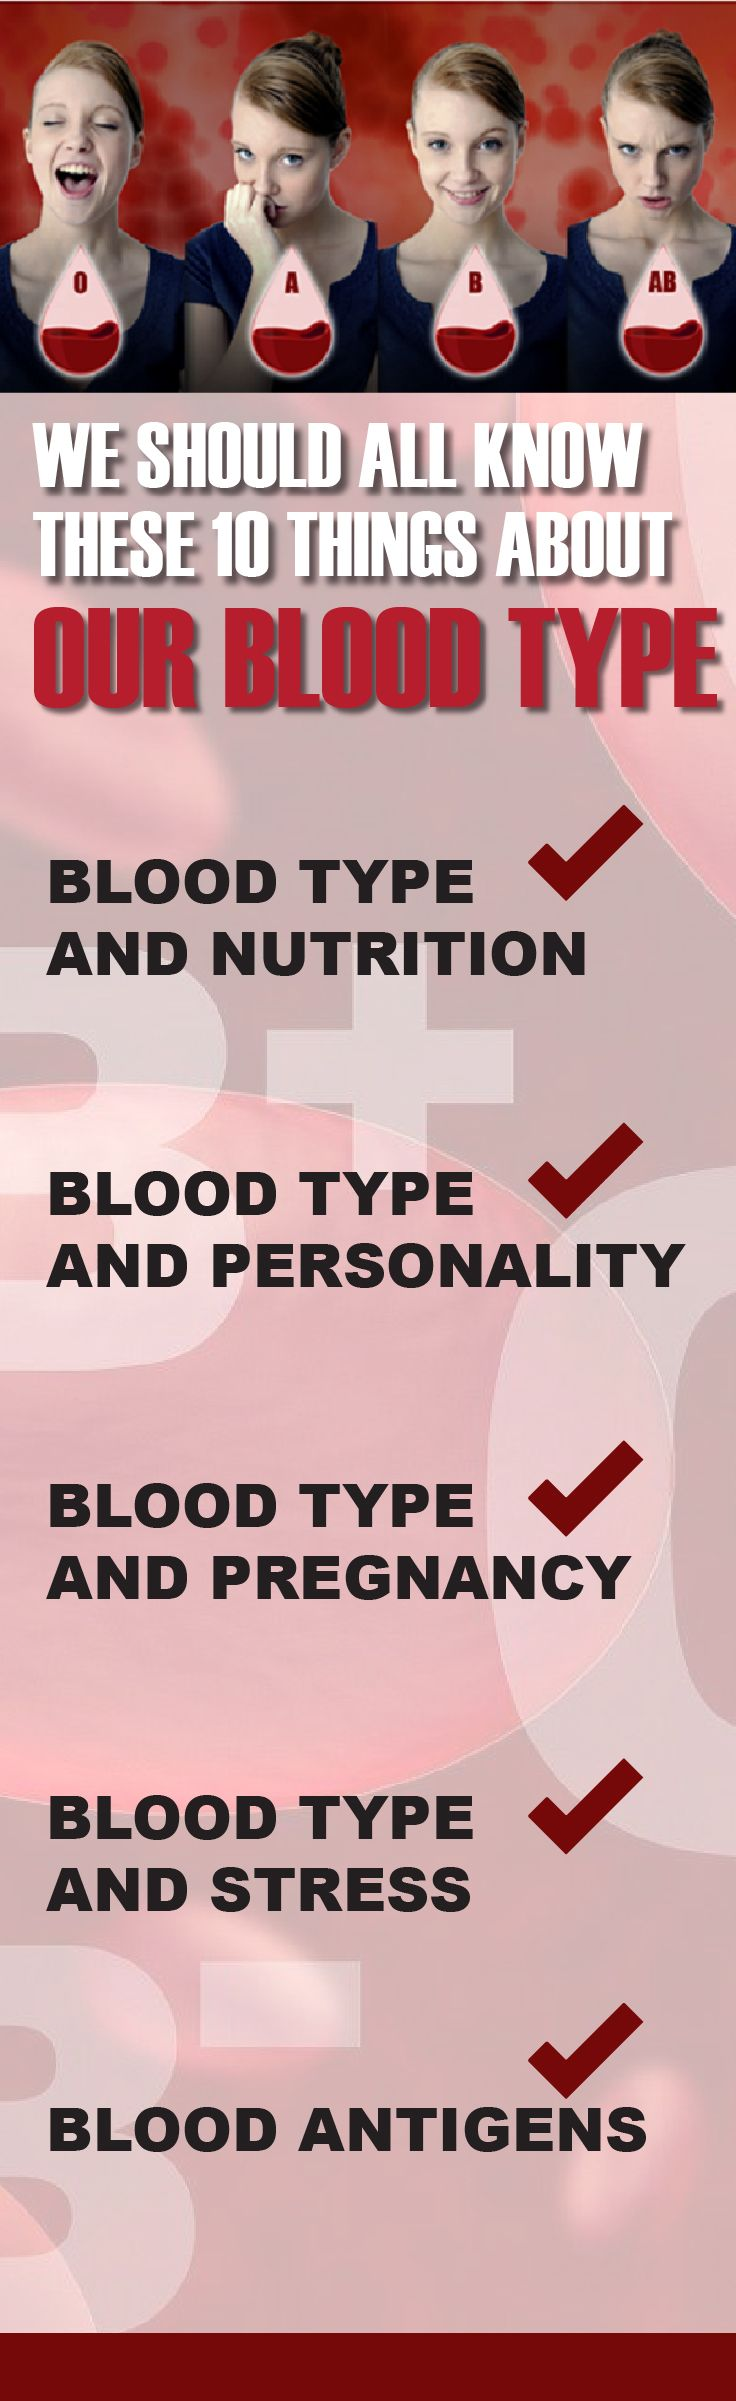 Best 25 blood groups ideas on pinterest blood type chart ab best 25 blood groups ideas on pinterest blood type chart ab blood group and blood types nvjuhfo Choice Image